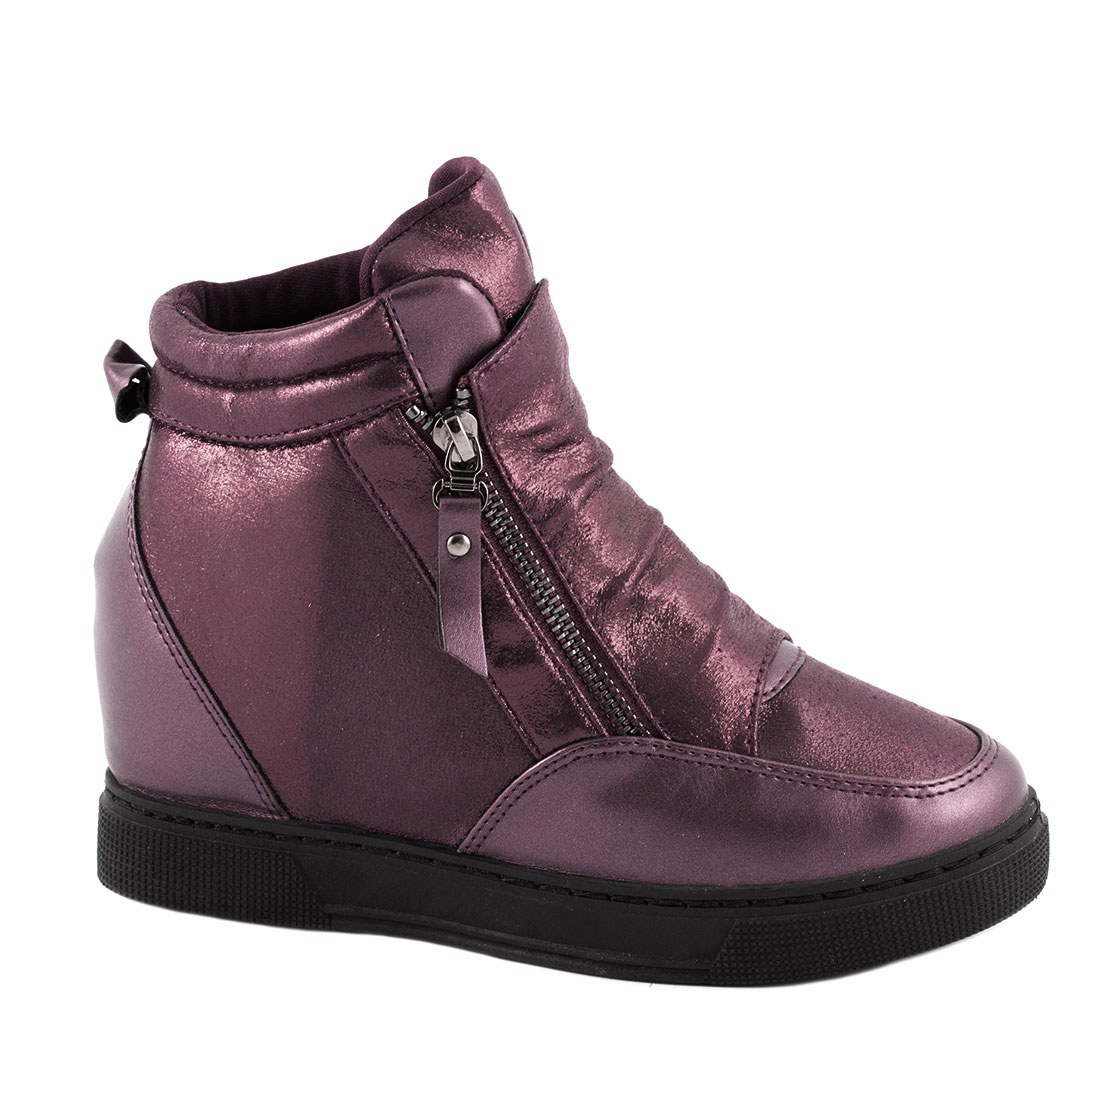 Sneakers cu talpa ortopedica HL61061-WINE